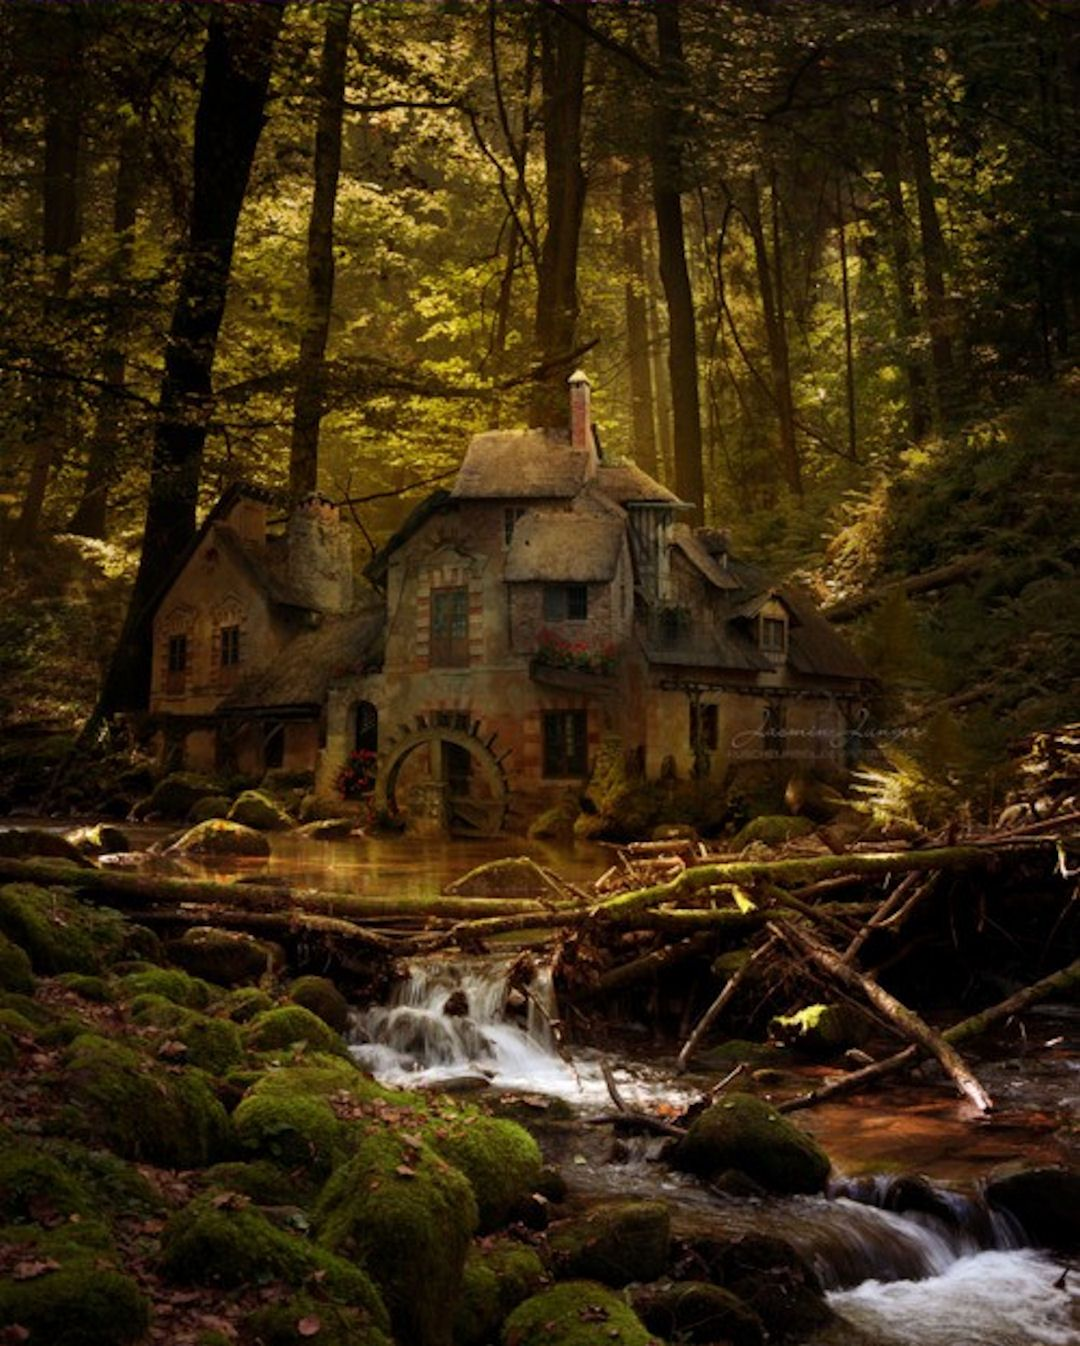 An Old Mill, Black Forest, Germany.